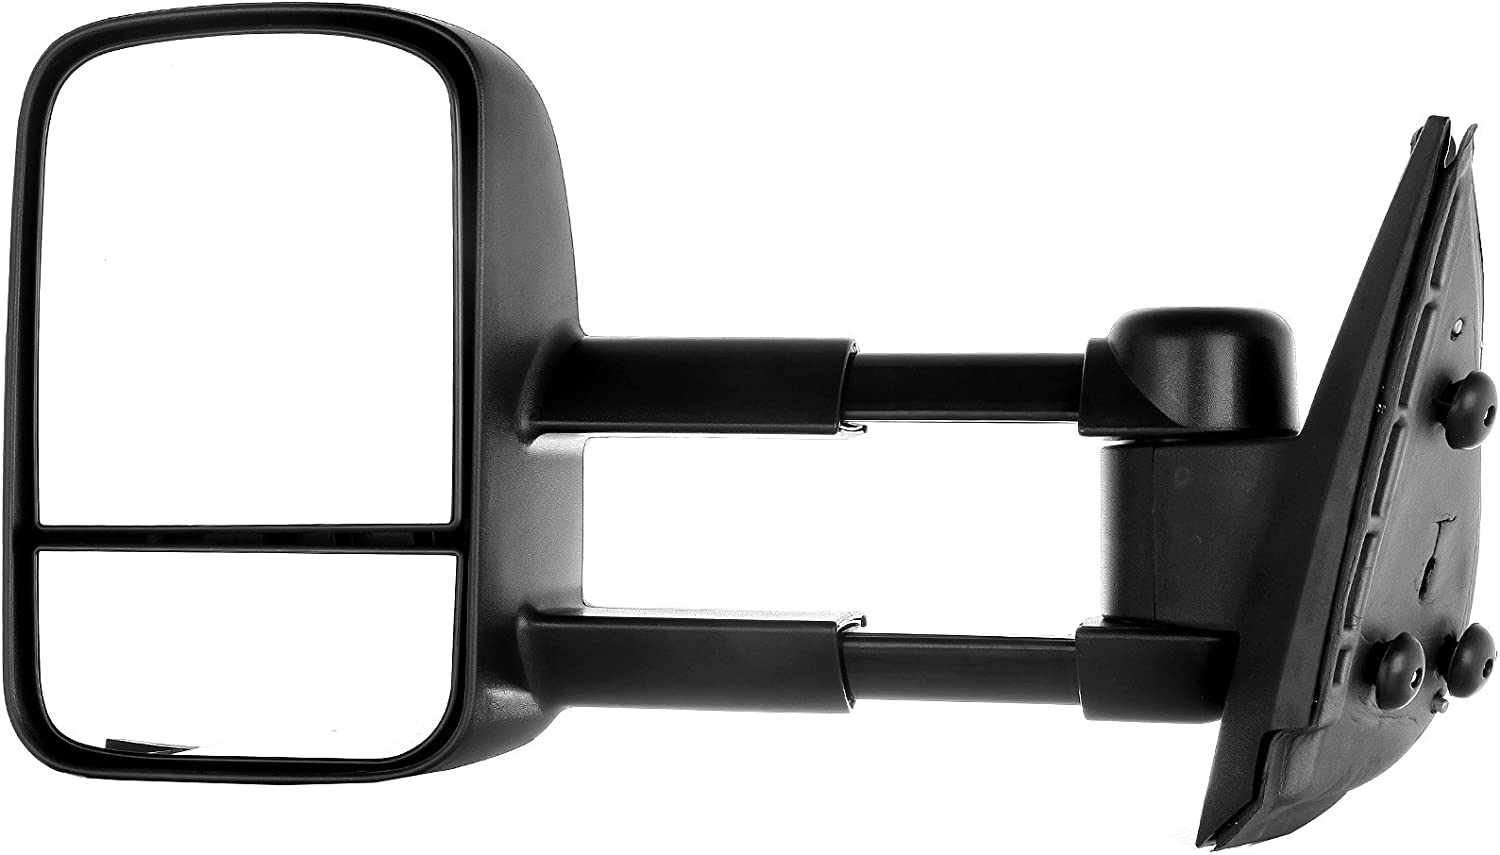 LSAILON Tow Mirrors Towing Mirrors Fit for 2007-2014 Chevy ...